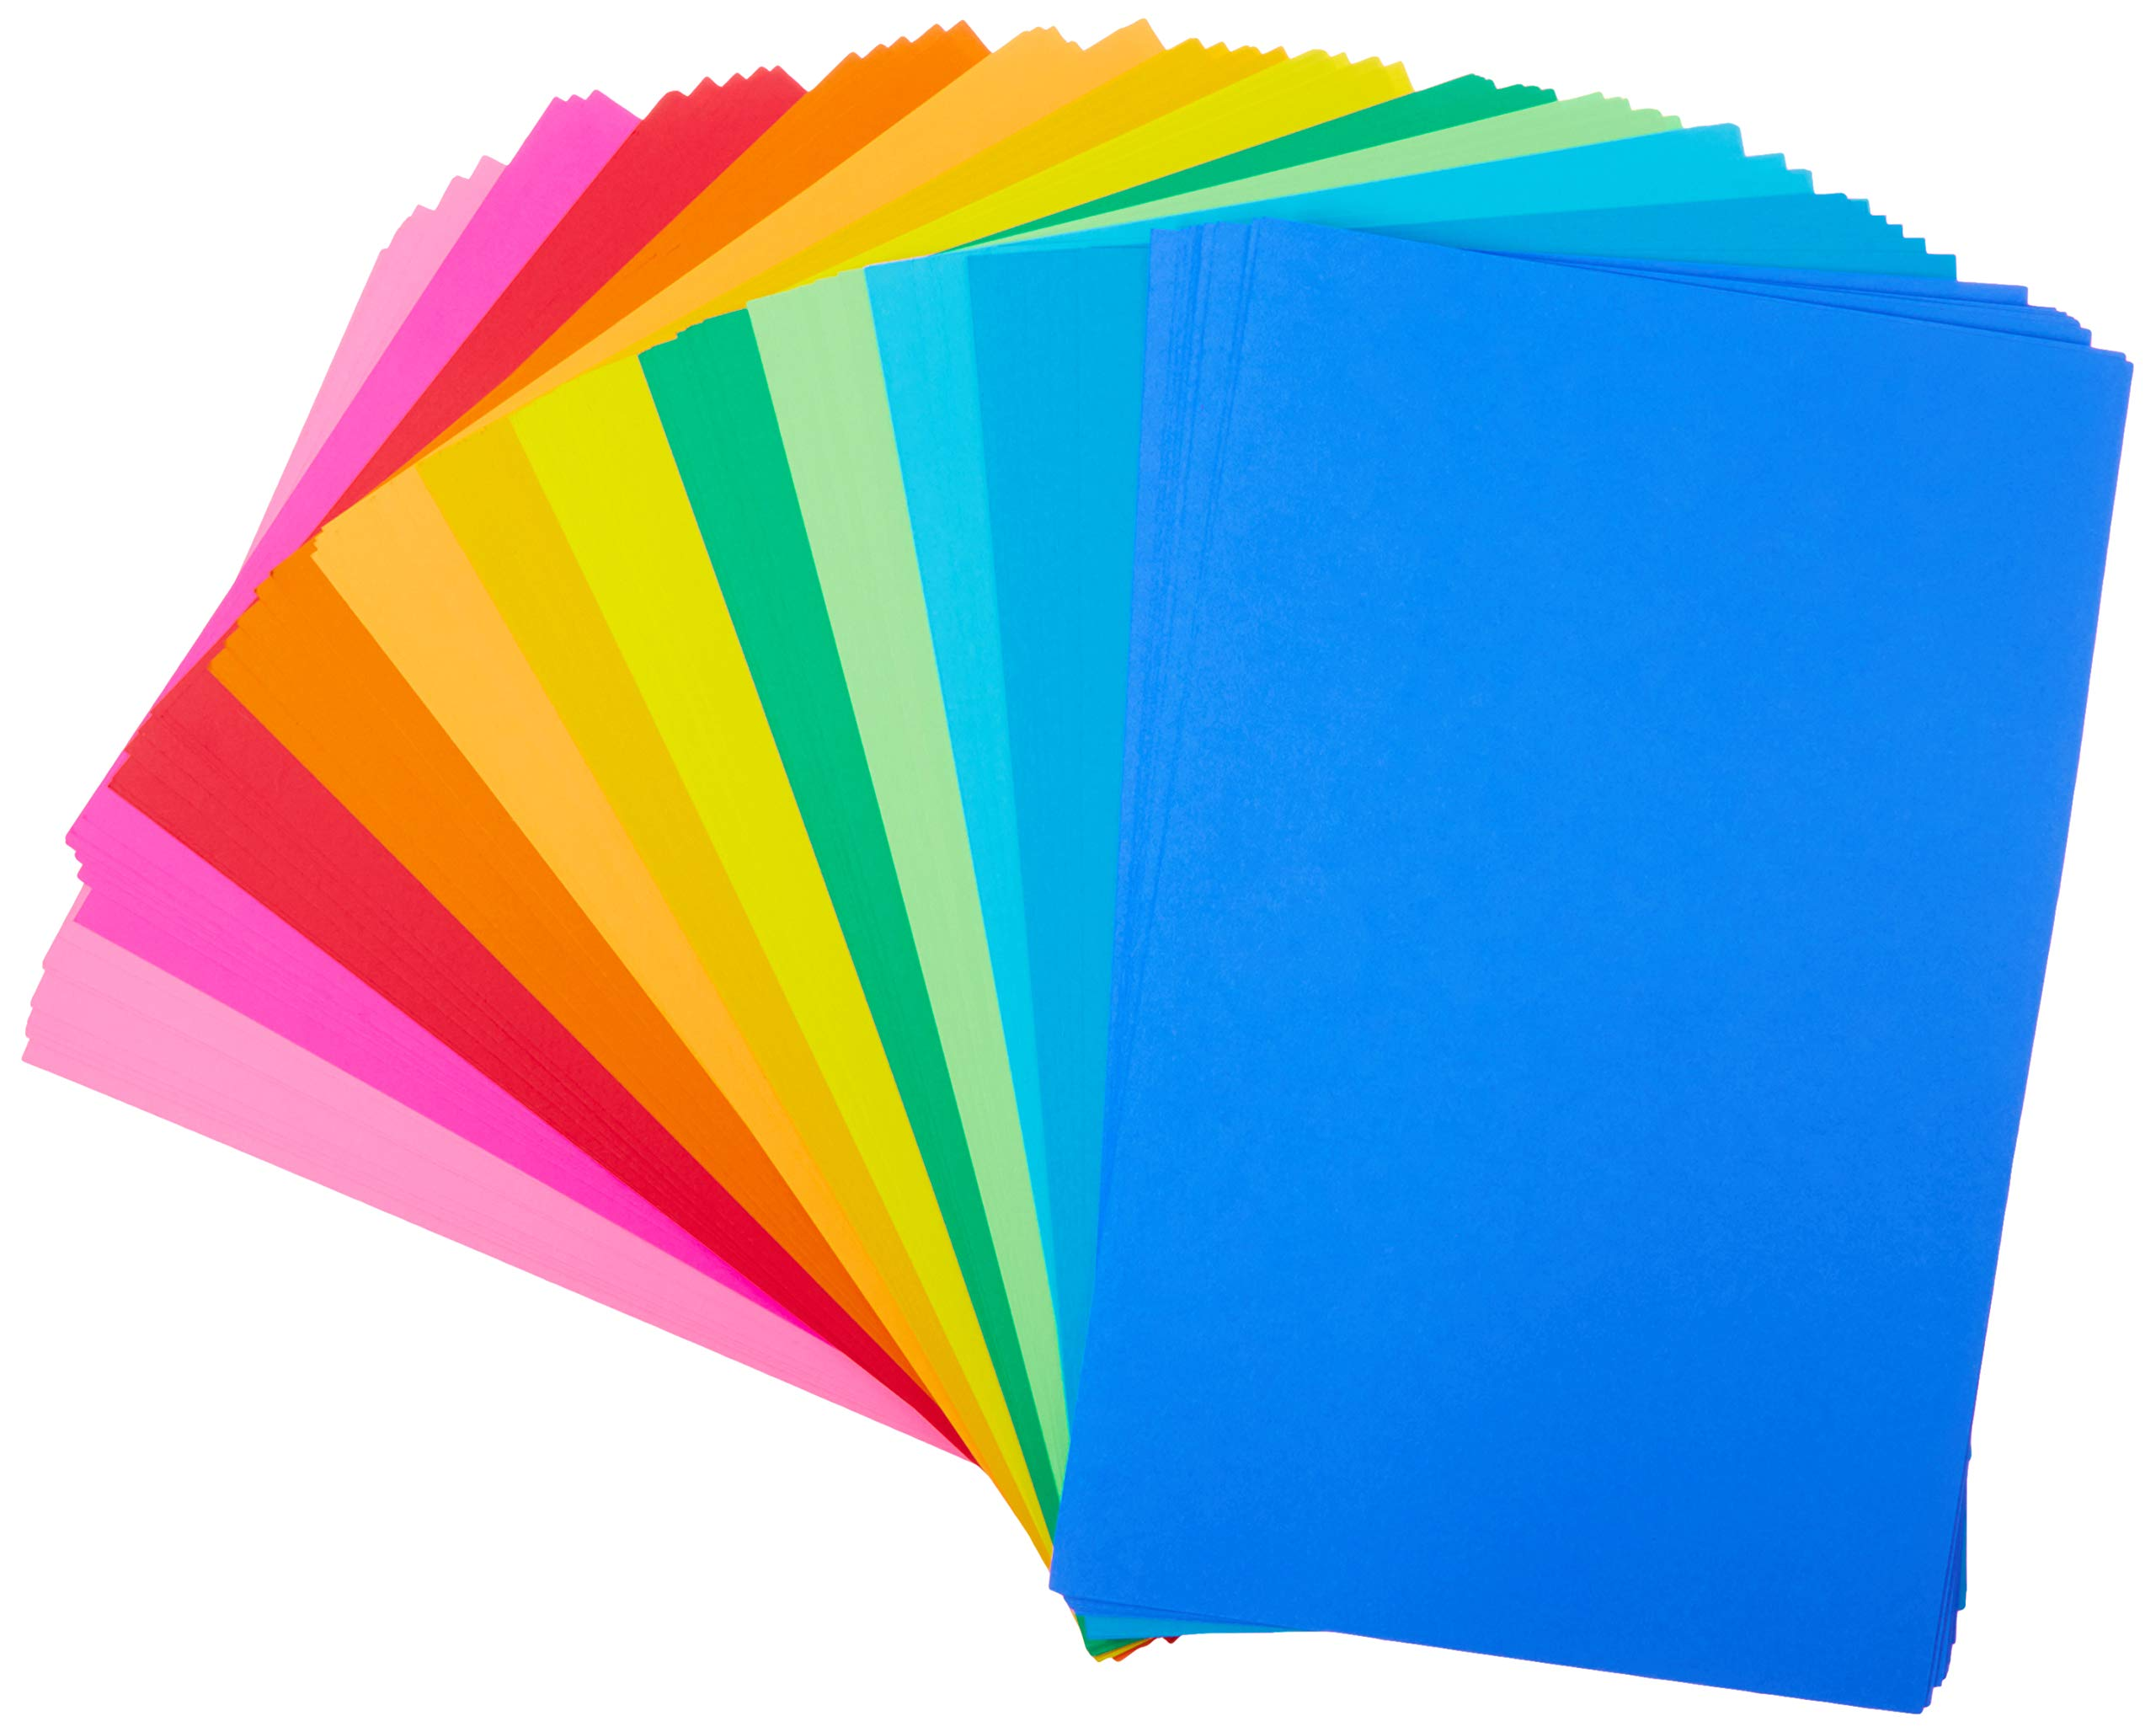 Hygloss Products Bright Tag, 11'' x 17'', 12 Assorted Colors, 96 Sheets by Hygloss